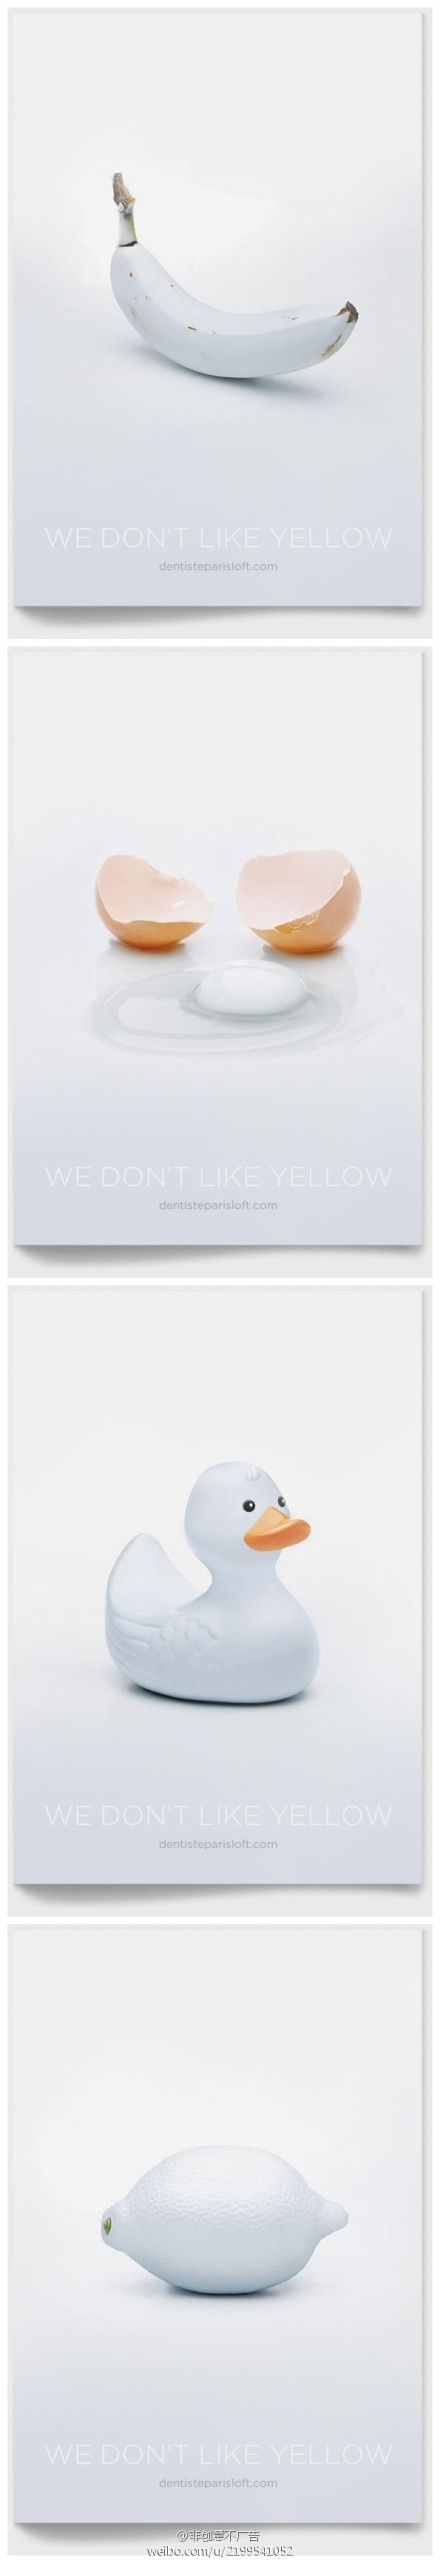 A dentist ads, We don't like yellow. #ads #adv #marketing #creative #publicité #print #advertising #campaign